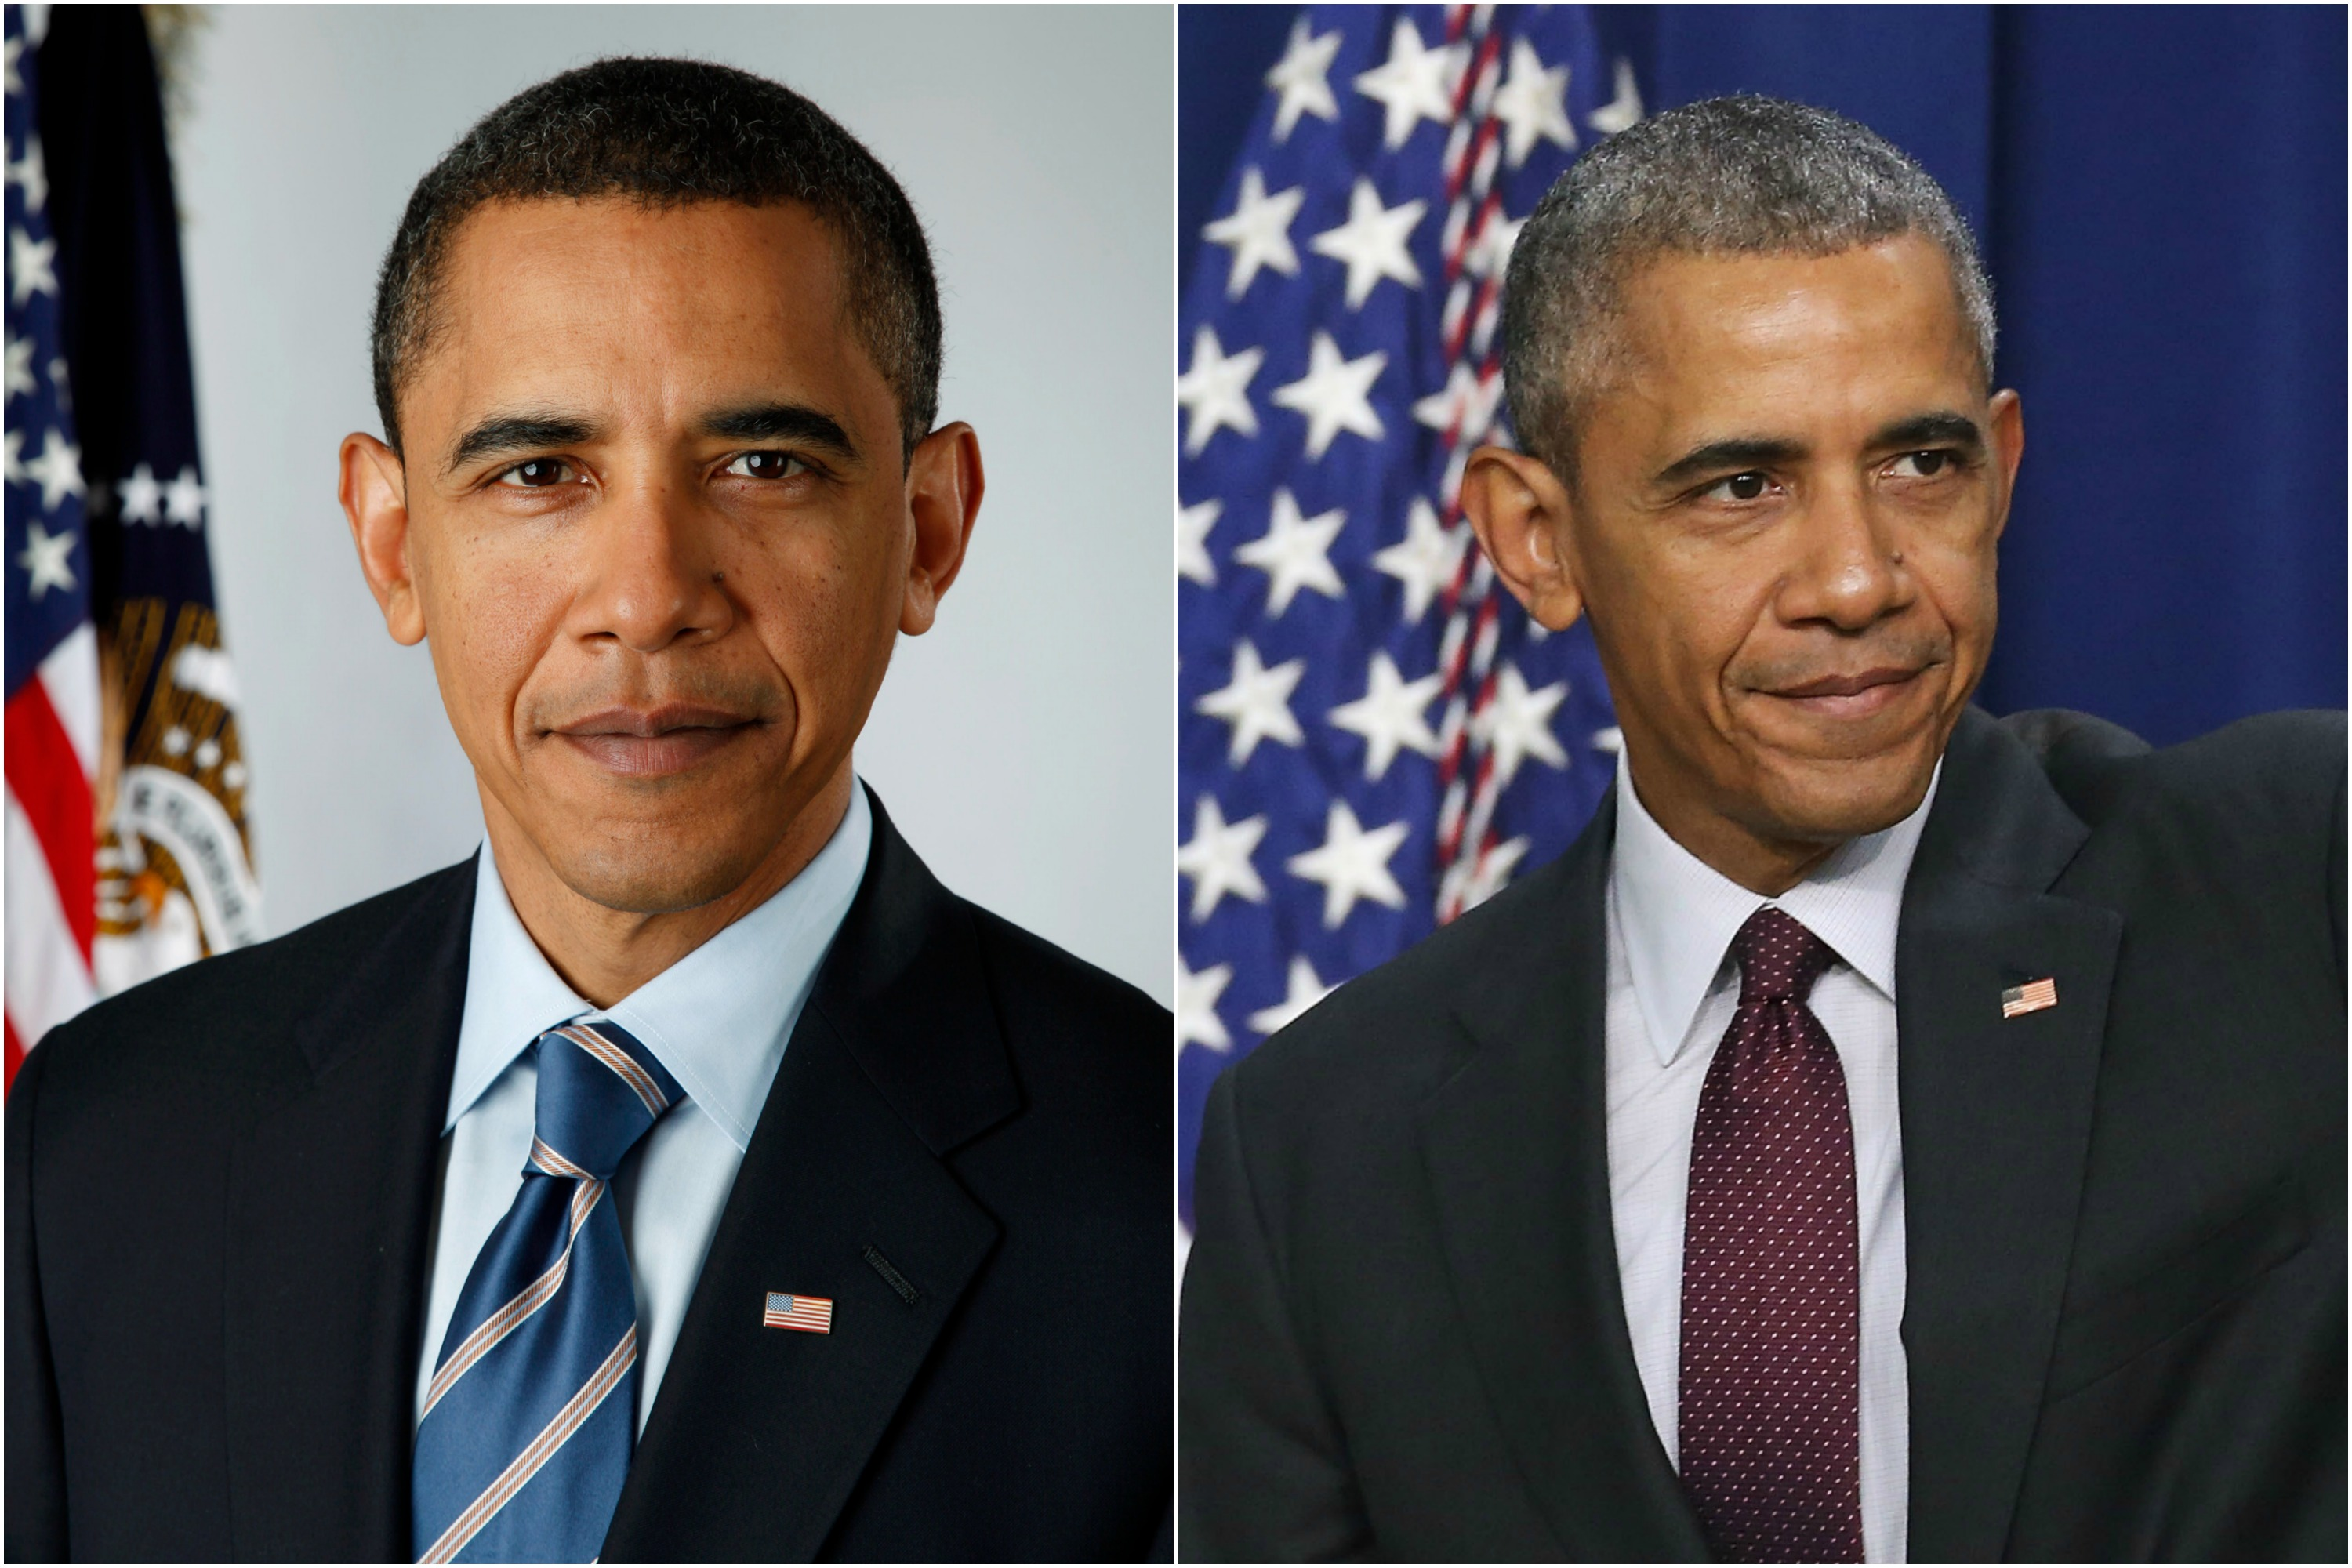 Barack Obama Is the Only Person in the Free World Who Gets Advance Game of Thrones'Screeners